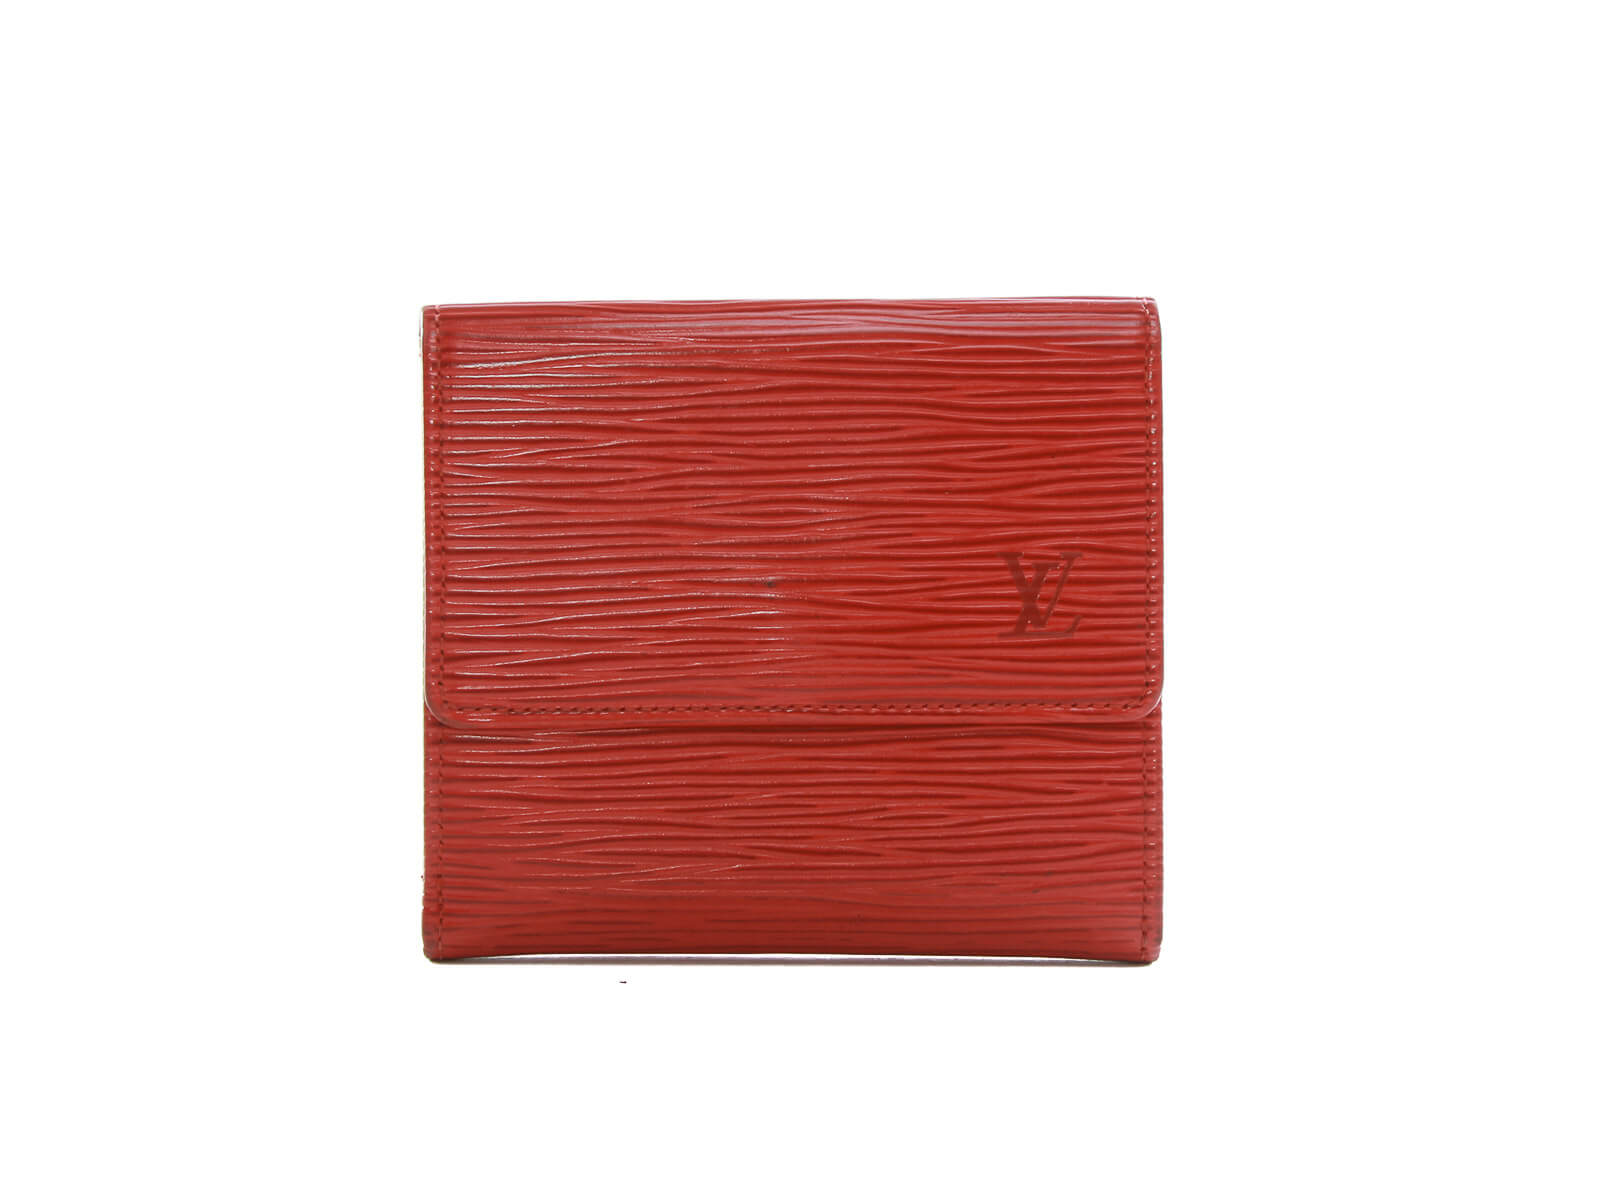 Authentic louis vuitton porte-monnaie billets cartes credit Red Epi wallet